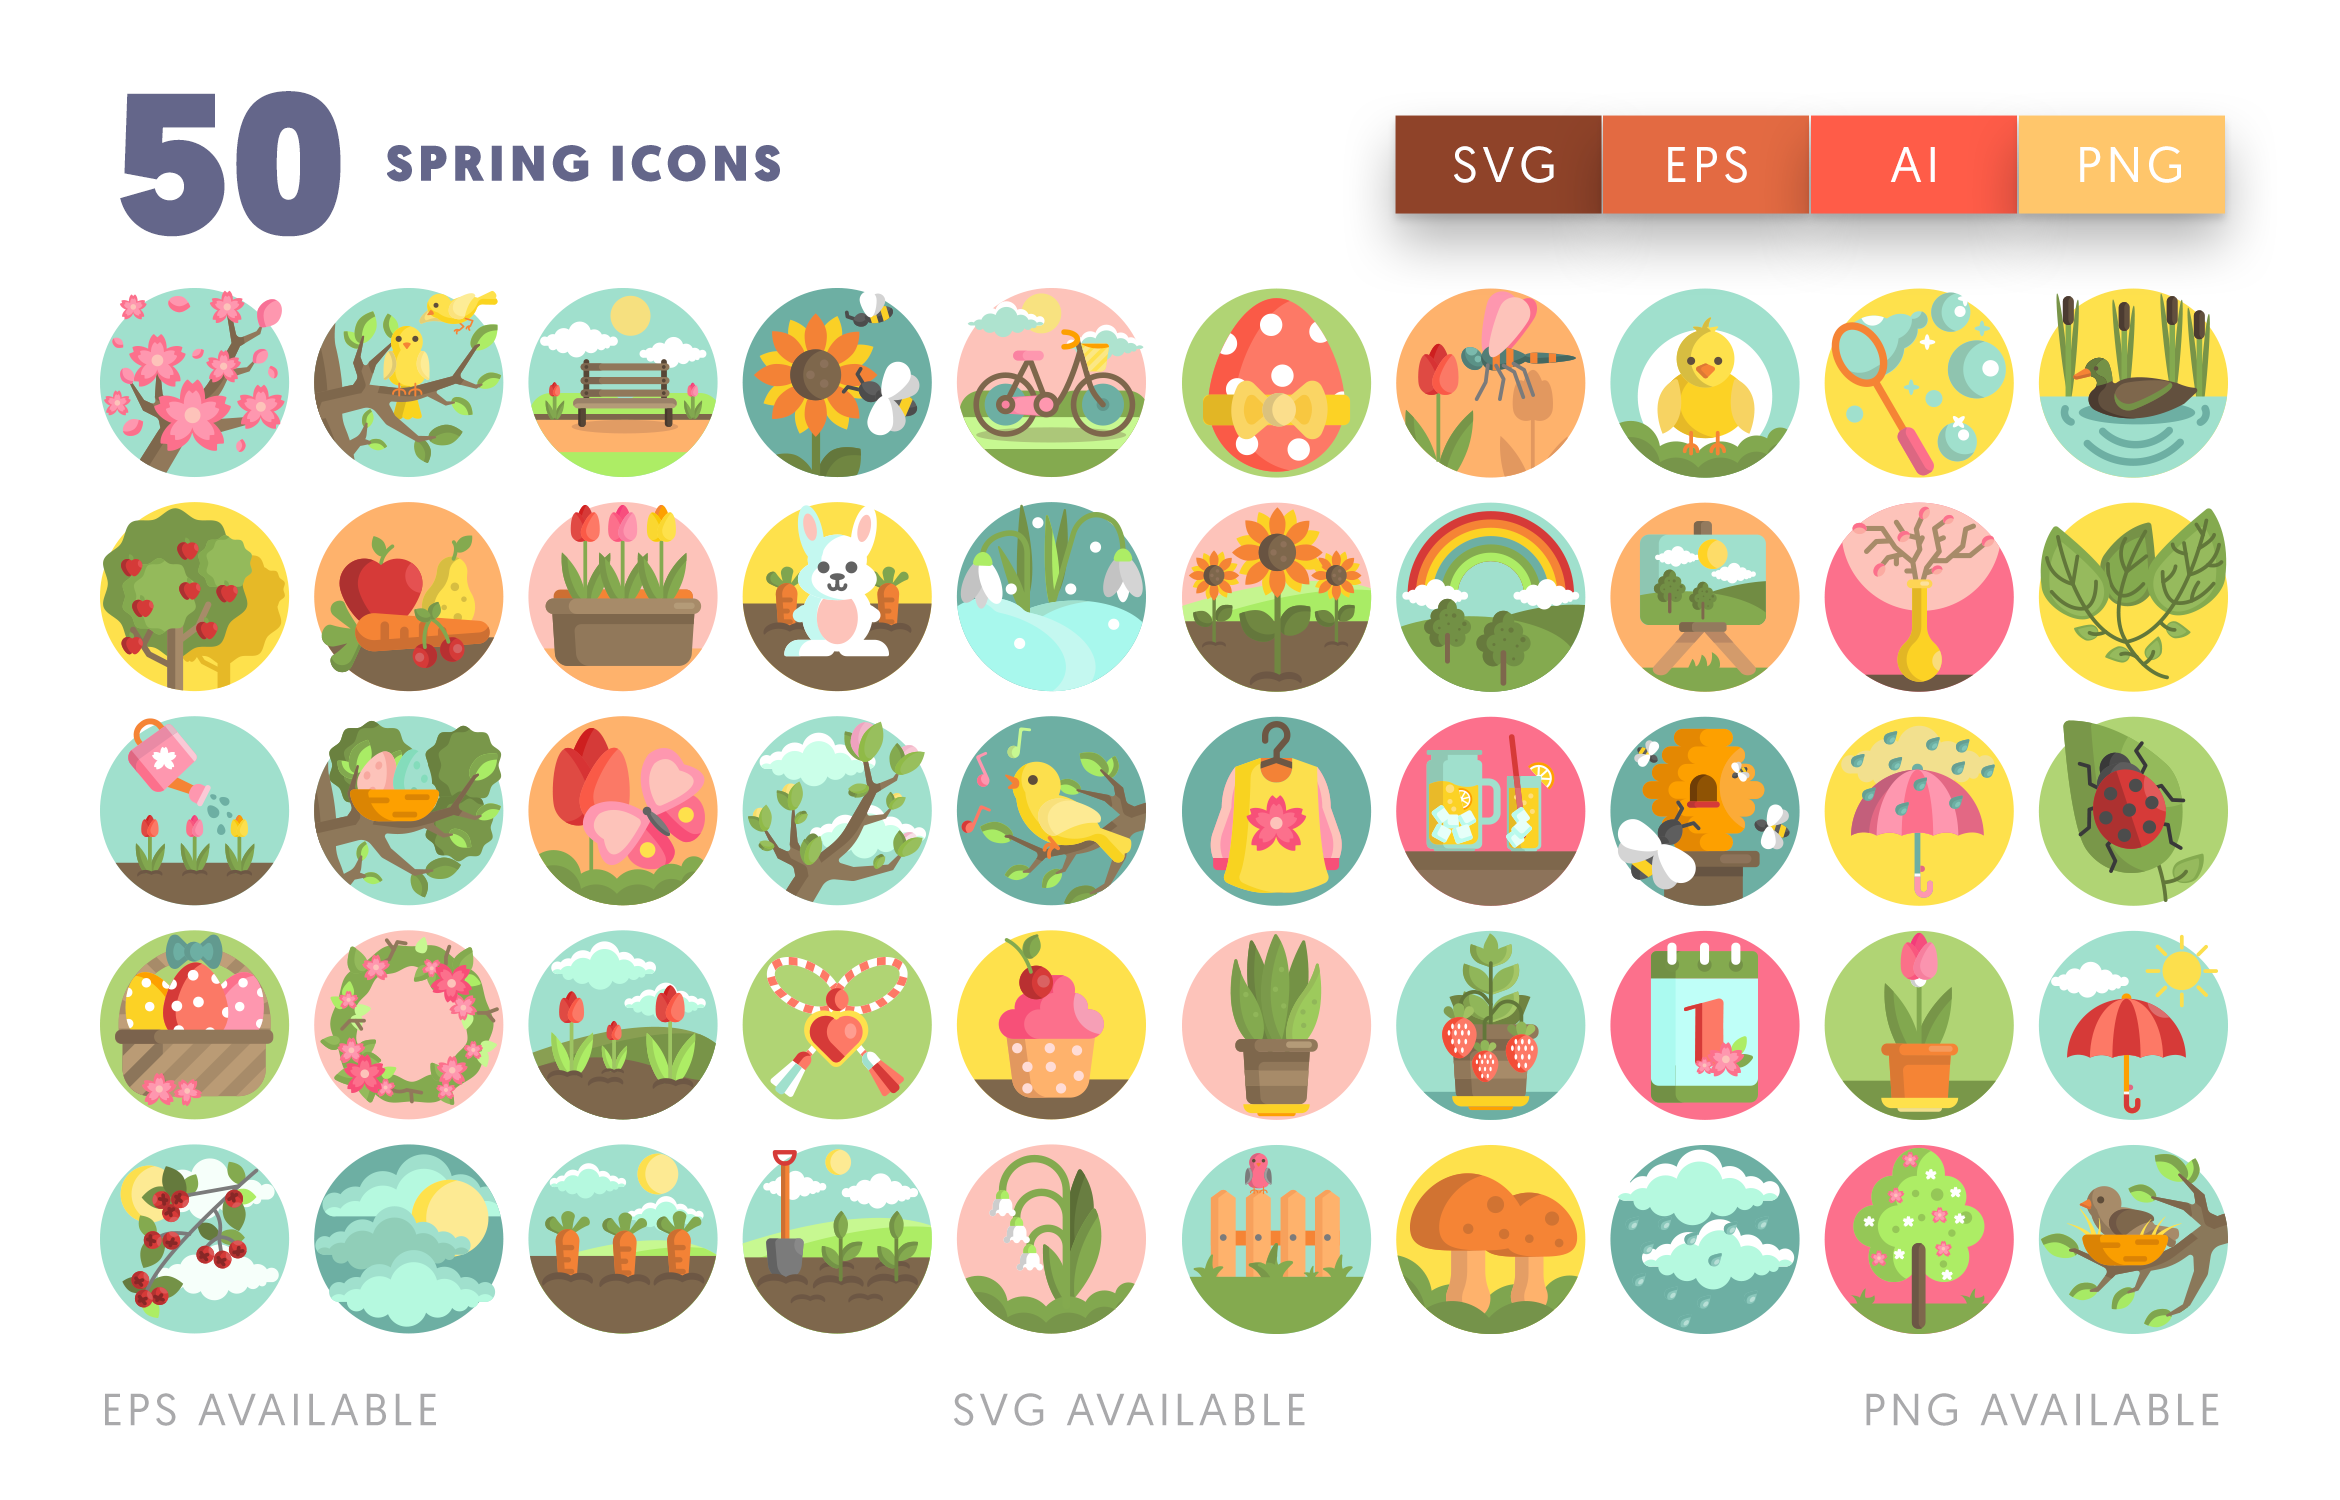 50 Spring Icons